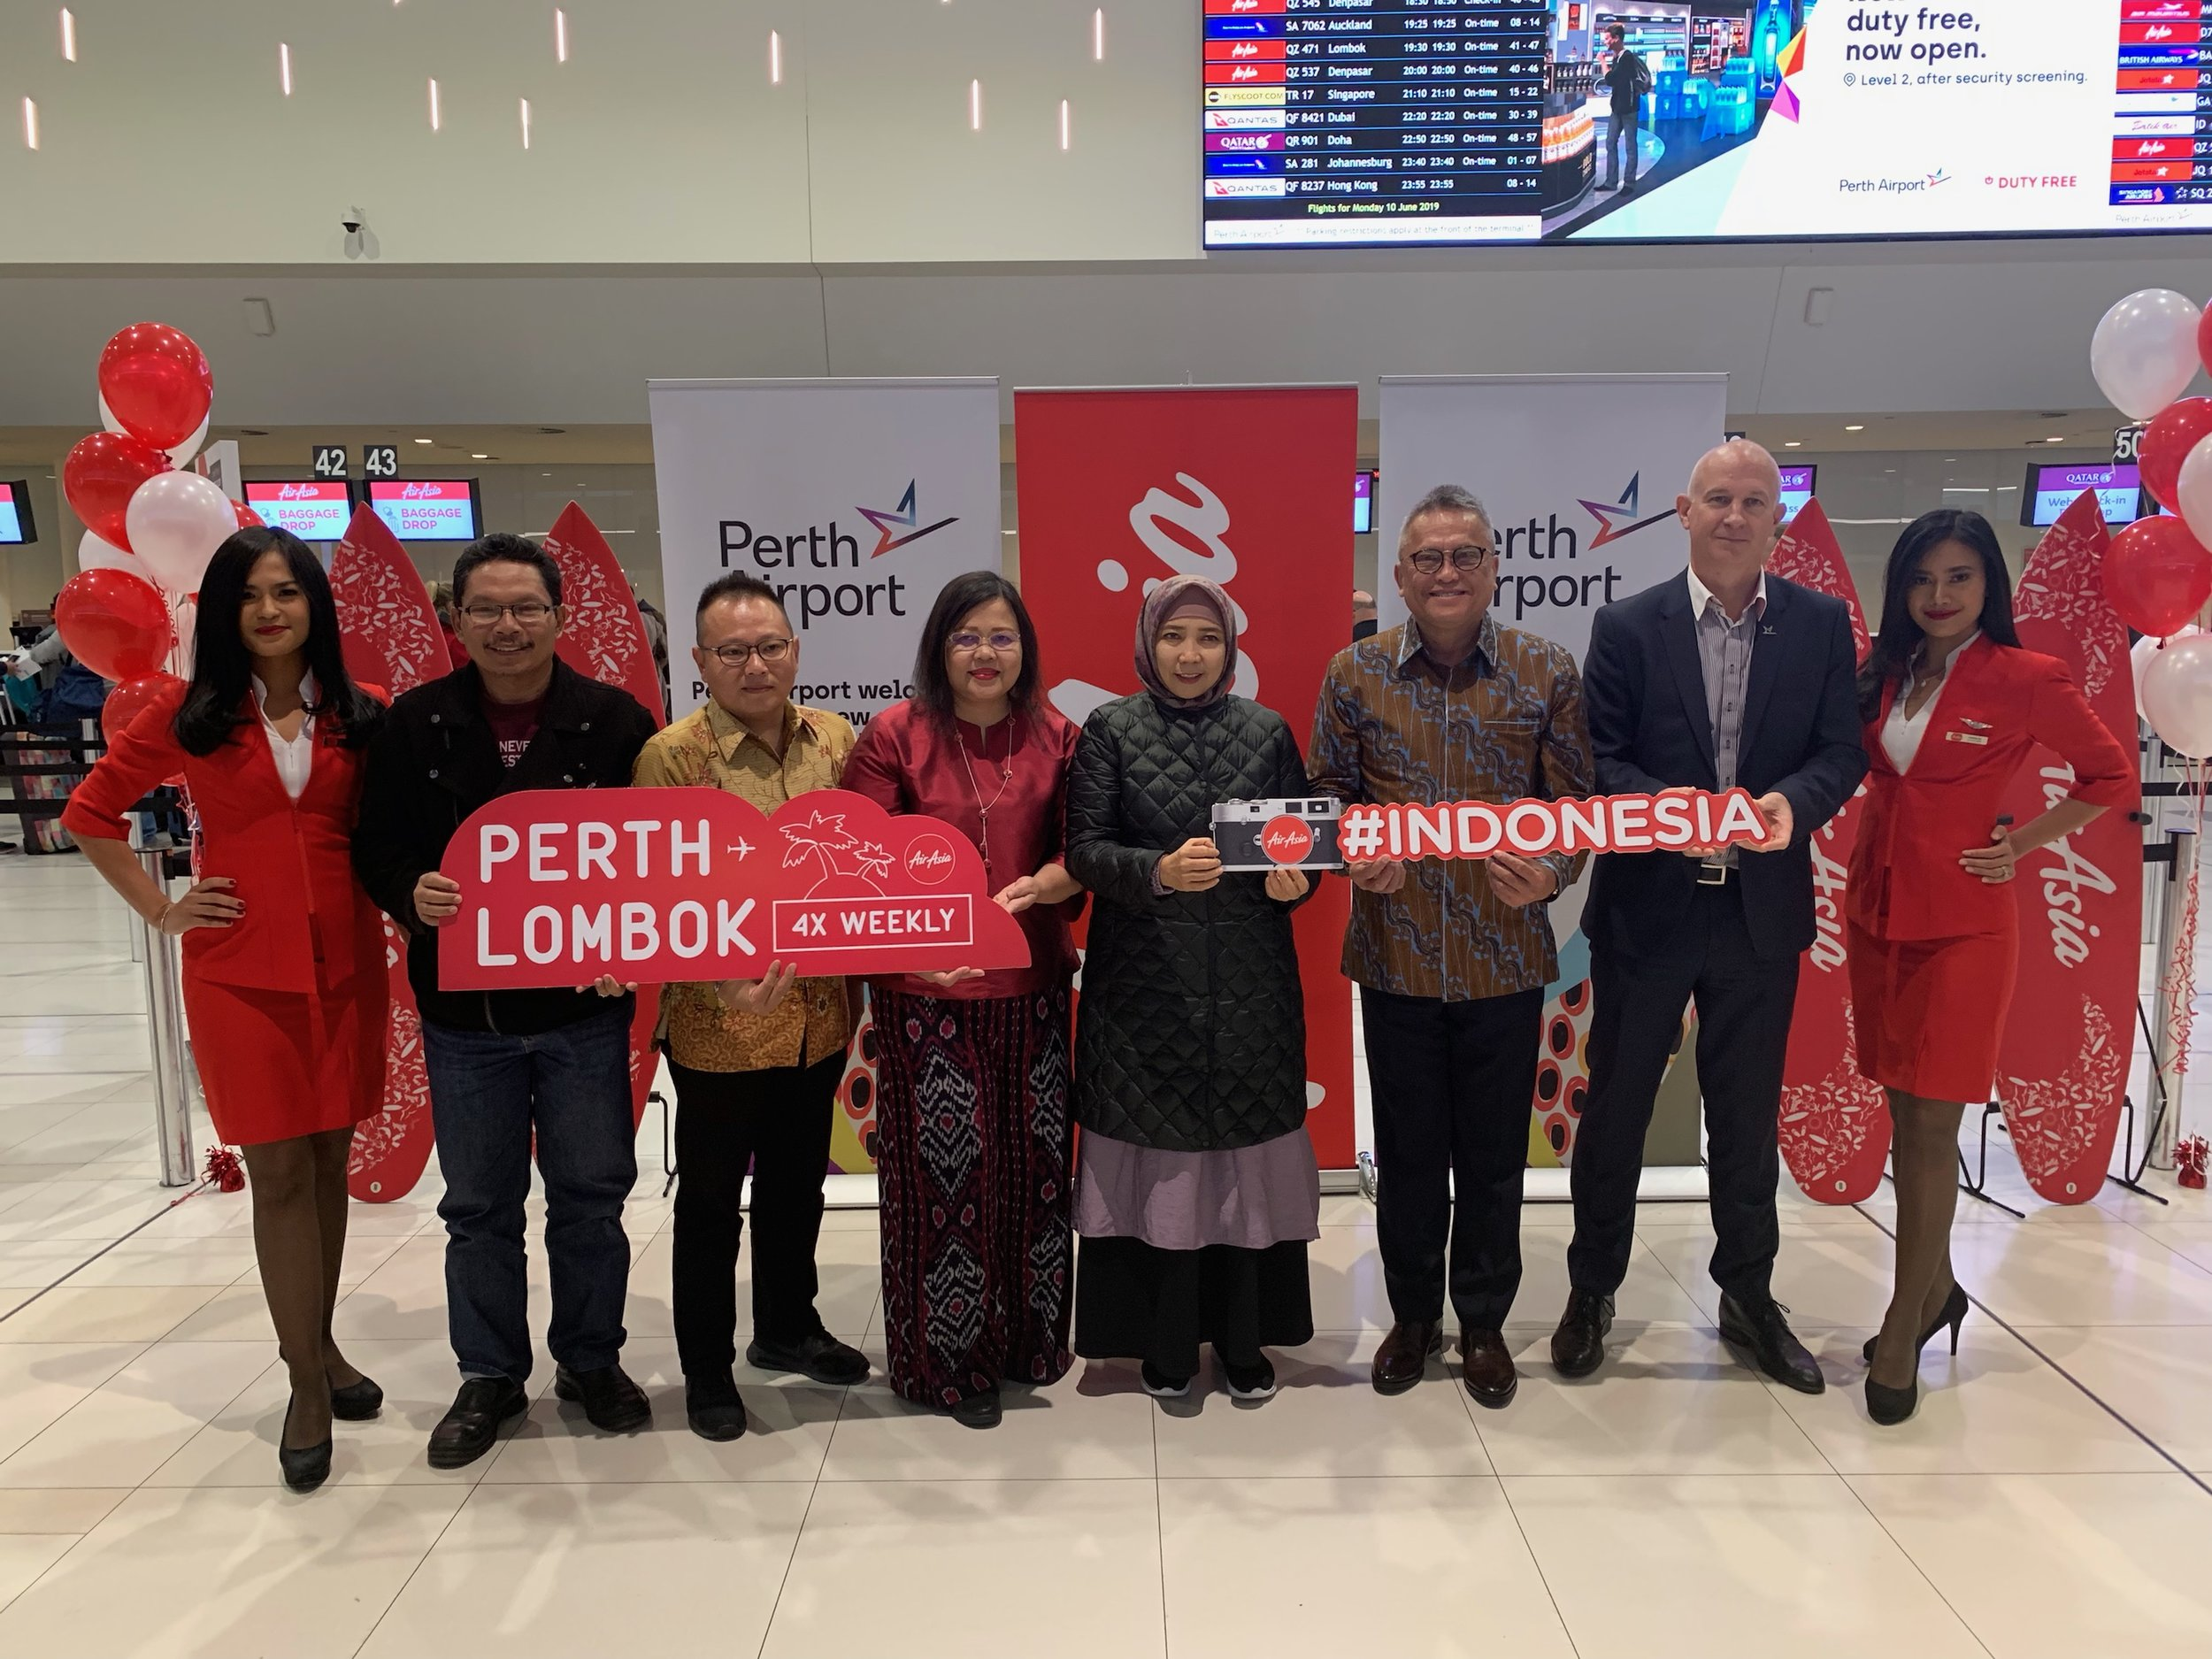 Photo Caption (From Left): Rosiady Sayuti, Provincial Secretary of West Nusa Tenggara Province, Indonesia; Rifai Taberi, Commercial Director of AirAsia Indonesia; Dewi Tobing, Consul General of the Republic of Indonesia in Perth; Sitti Rohmi Djalilah, Vice Governor of West Nusa Tenggara Province, Indonesia; Robert Waloni, Senior Adviser to the Minister for Air Accessibility, Ministry of Tourism Republic Indonesia and Kevin Brown, Perth Airport CEO flanked by cabin crew